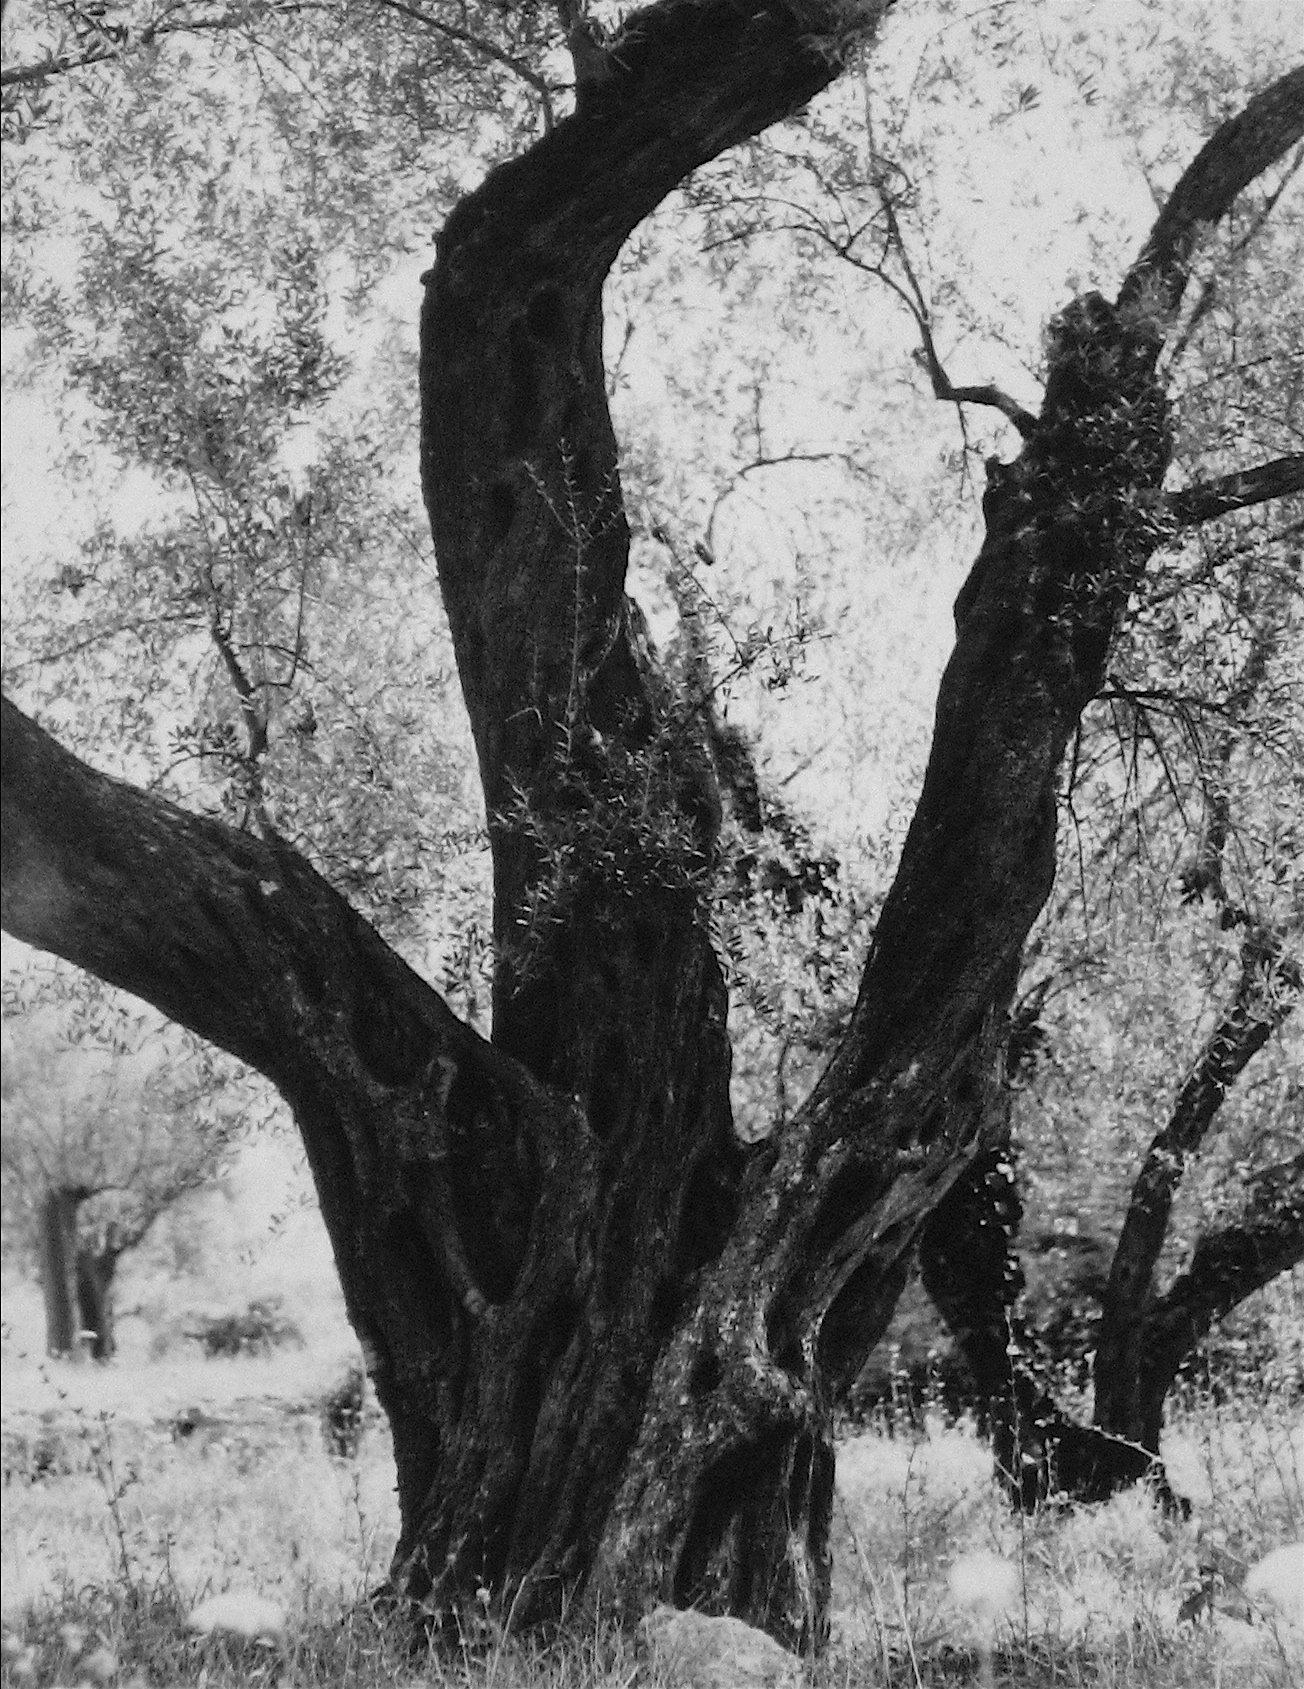 Tree in Rome 1960s Black and White Photograph